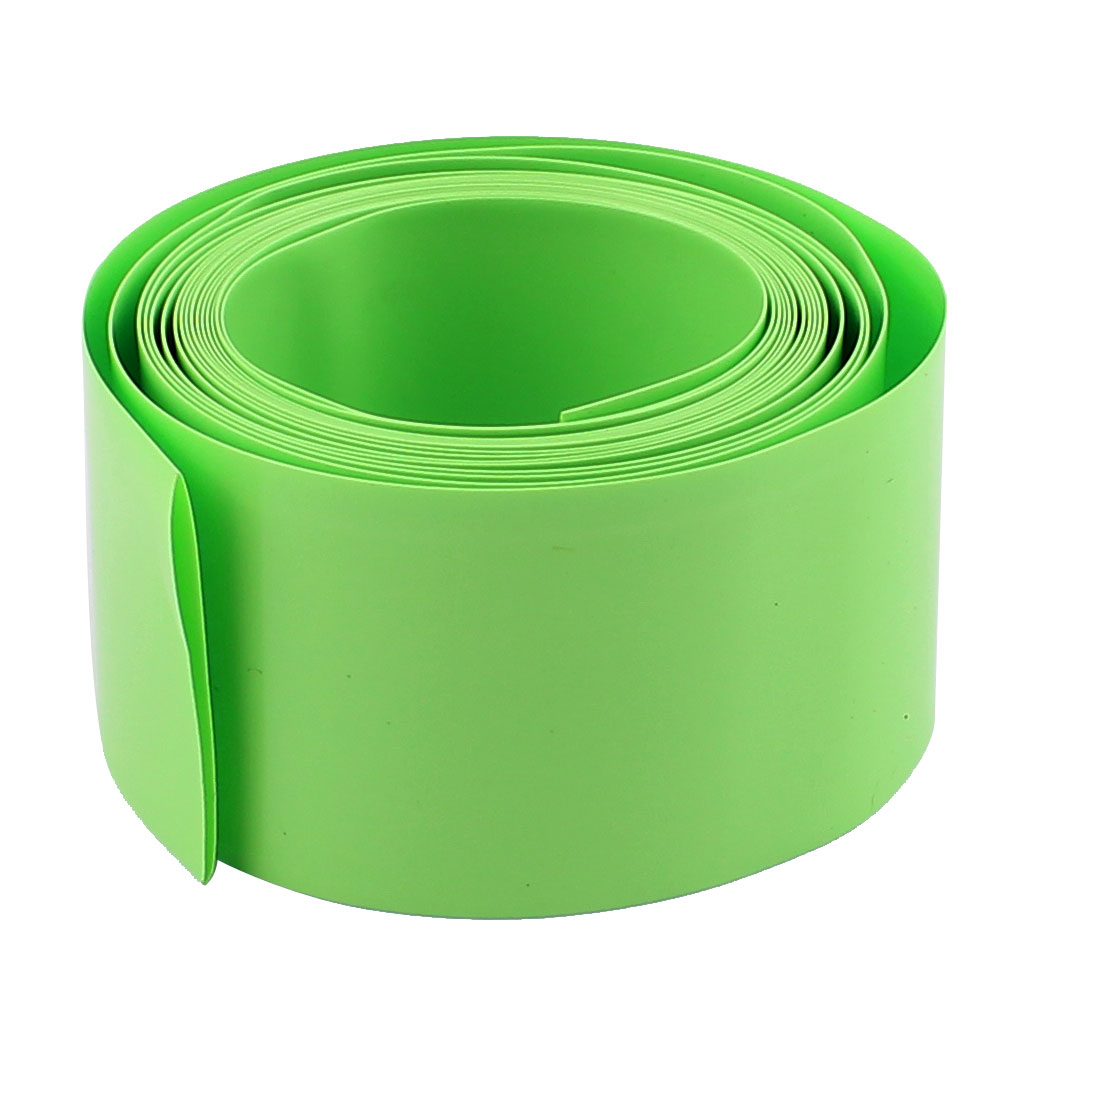 6.5ft Length 18.5mm Dia PVC Heat Shrinkable Tube Battery Protective Casing Green